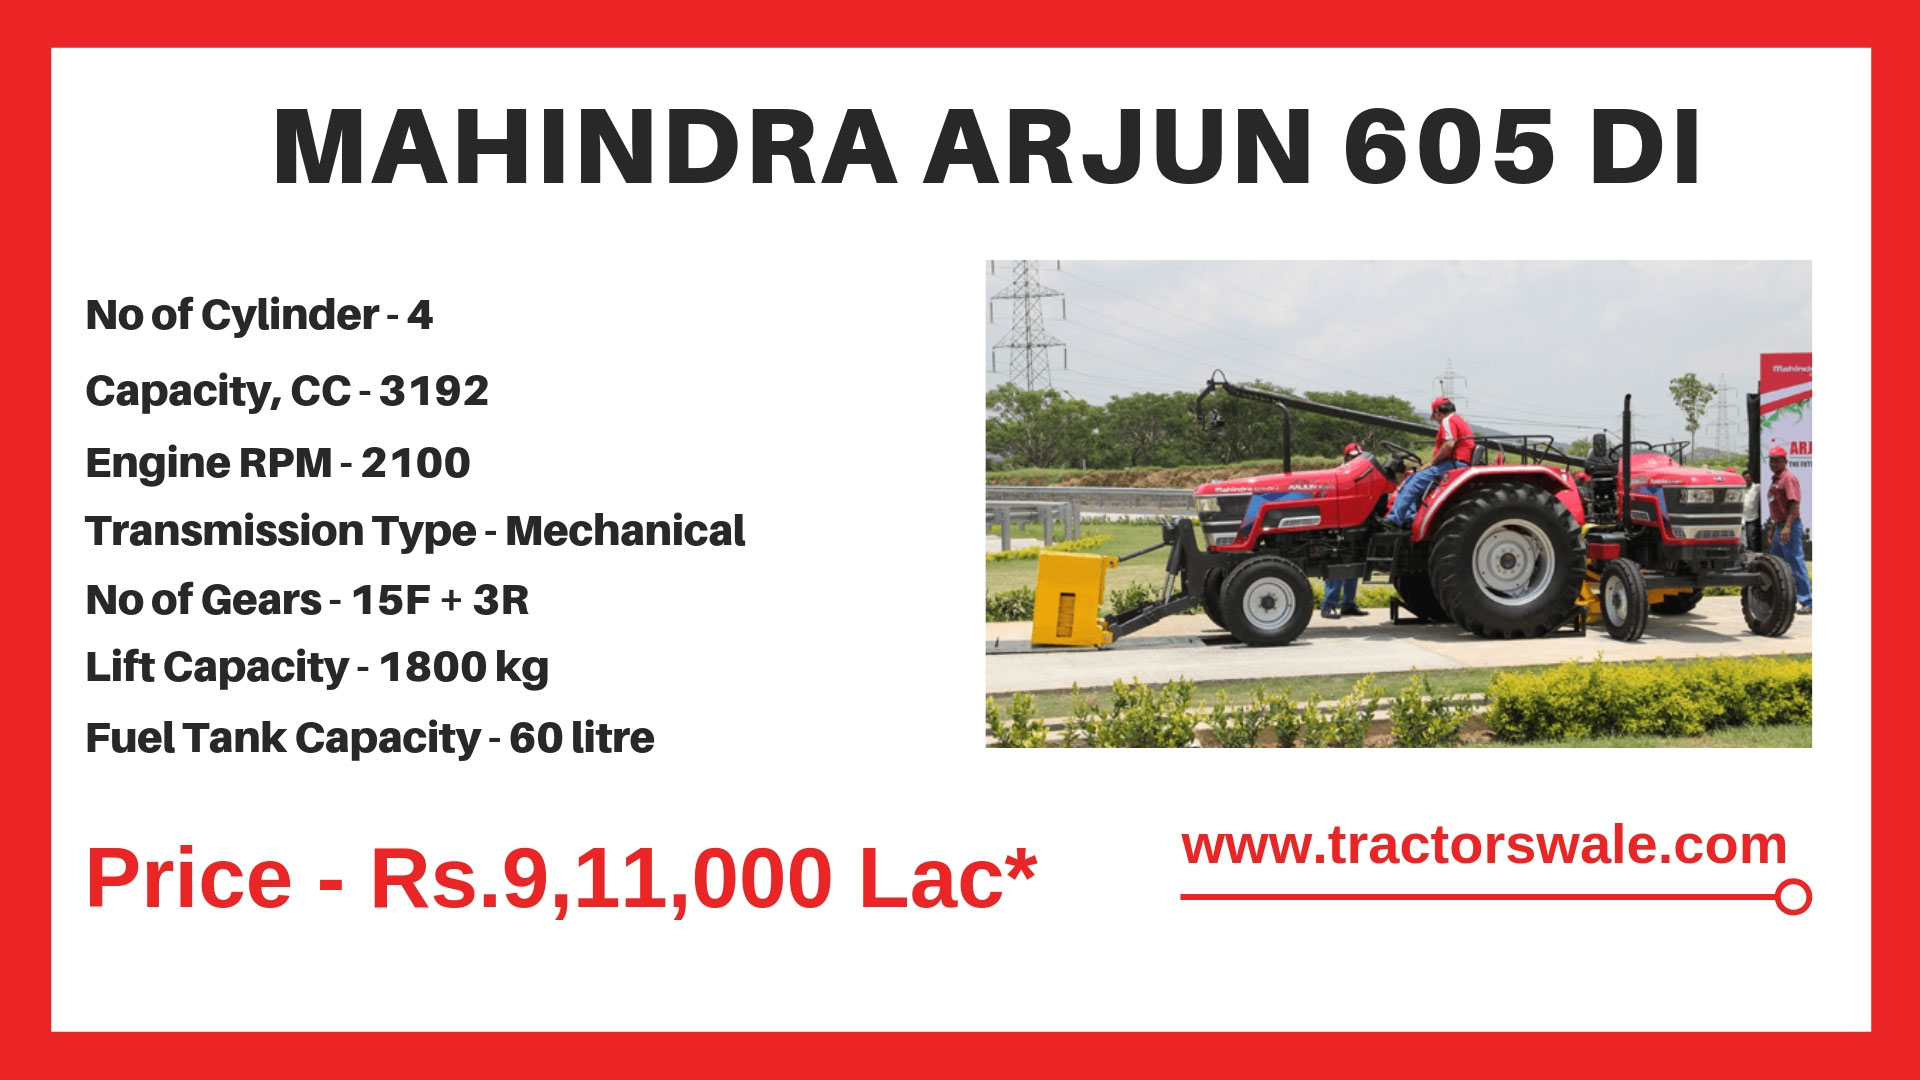 Mahindra Arjun Novo 605 DI Tractor Specifications